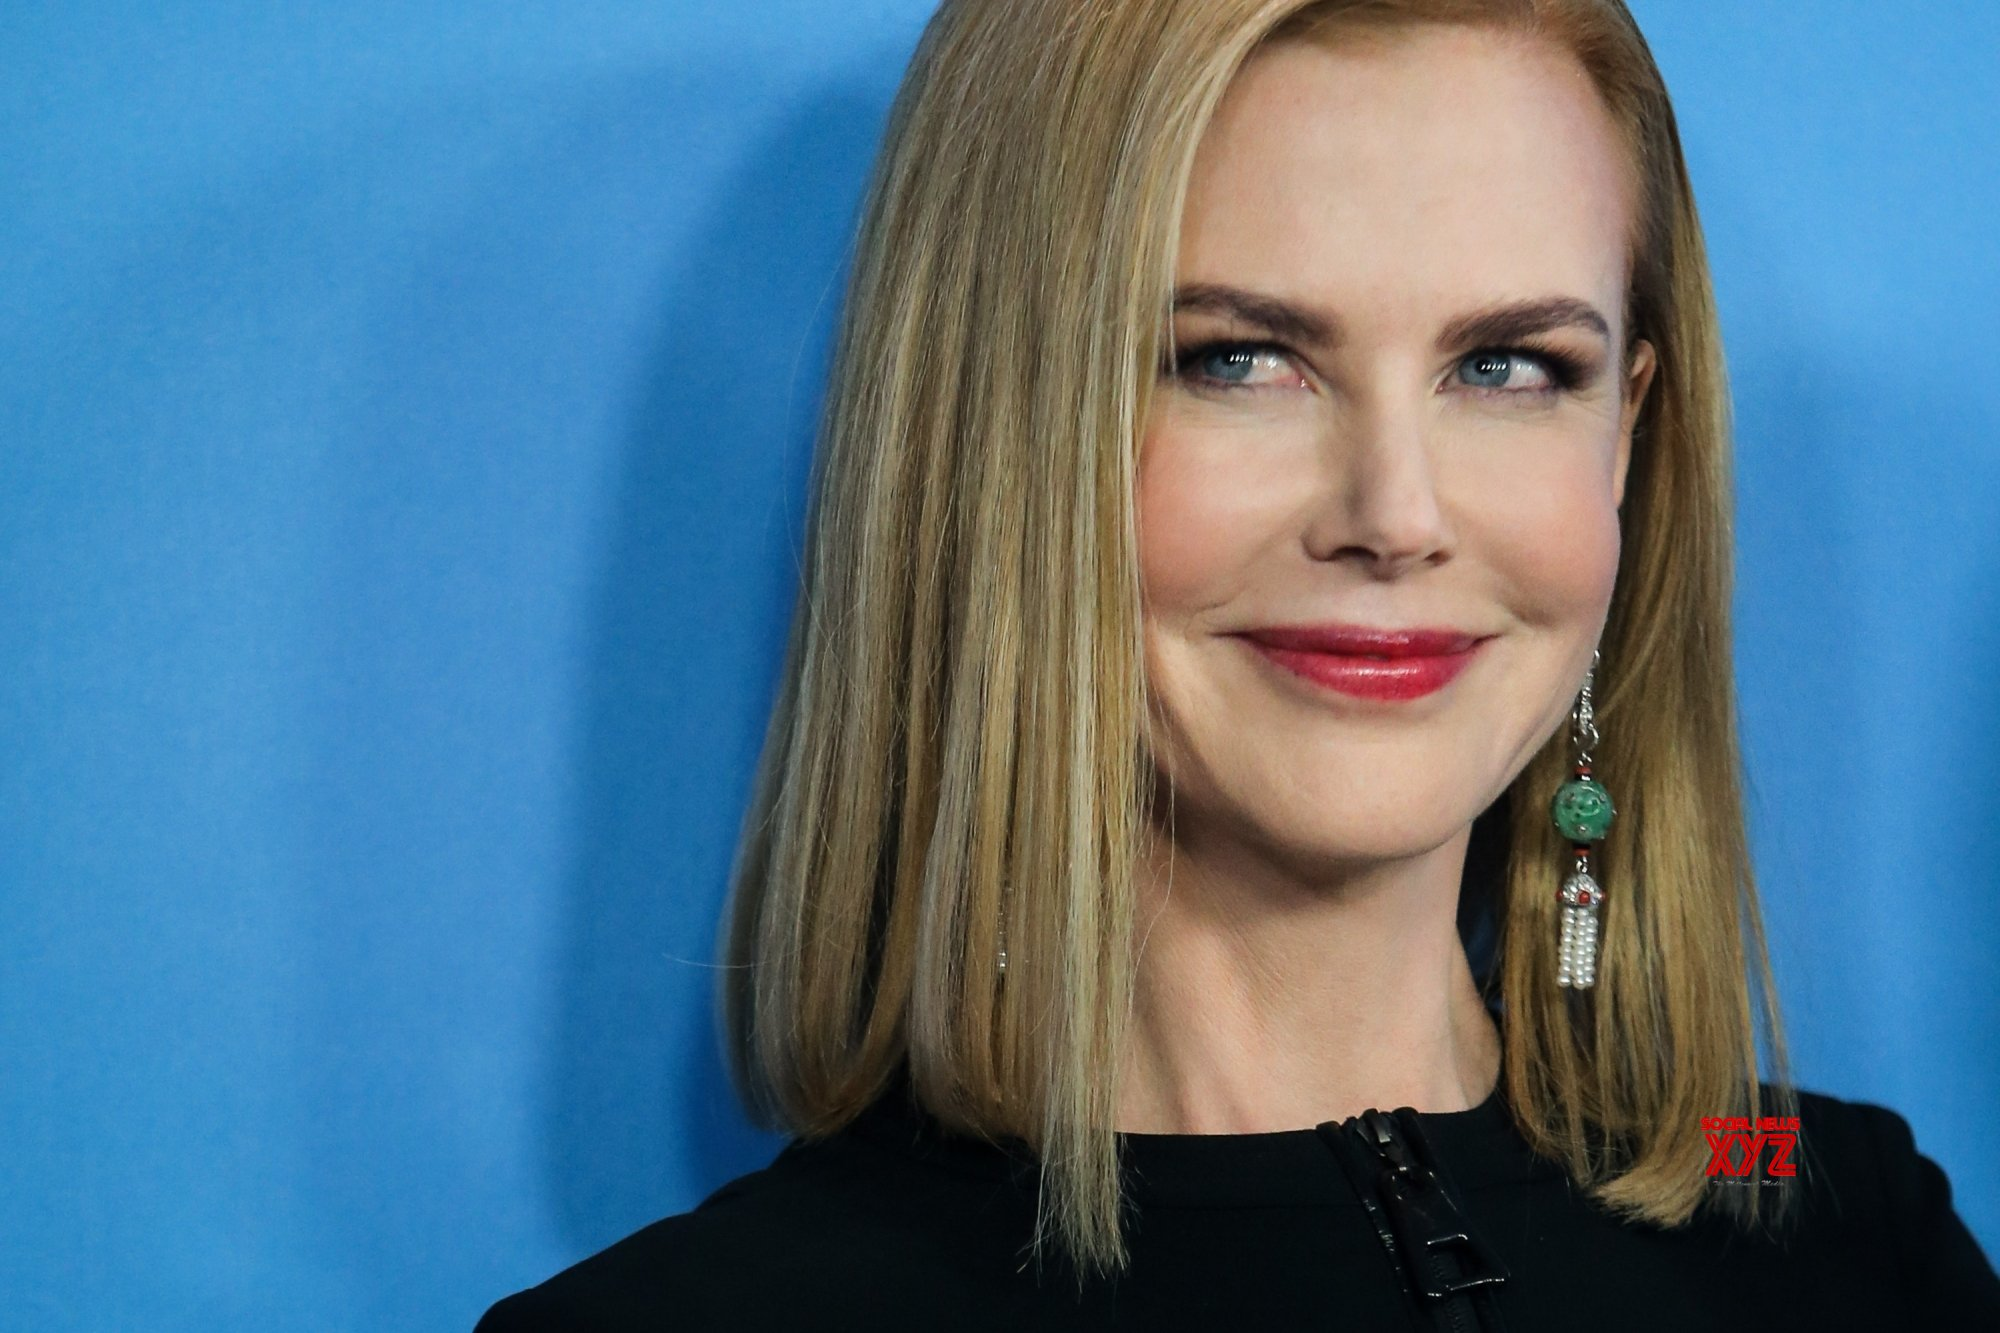 Traumatic roles can affect actors: Nicole Kidman